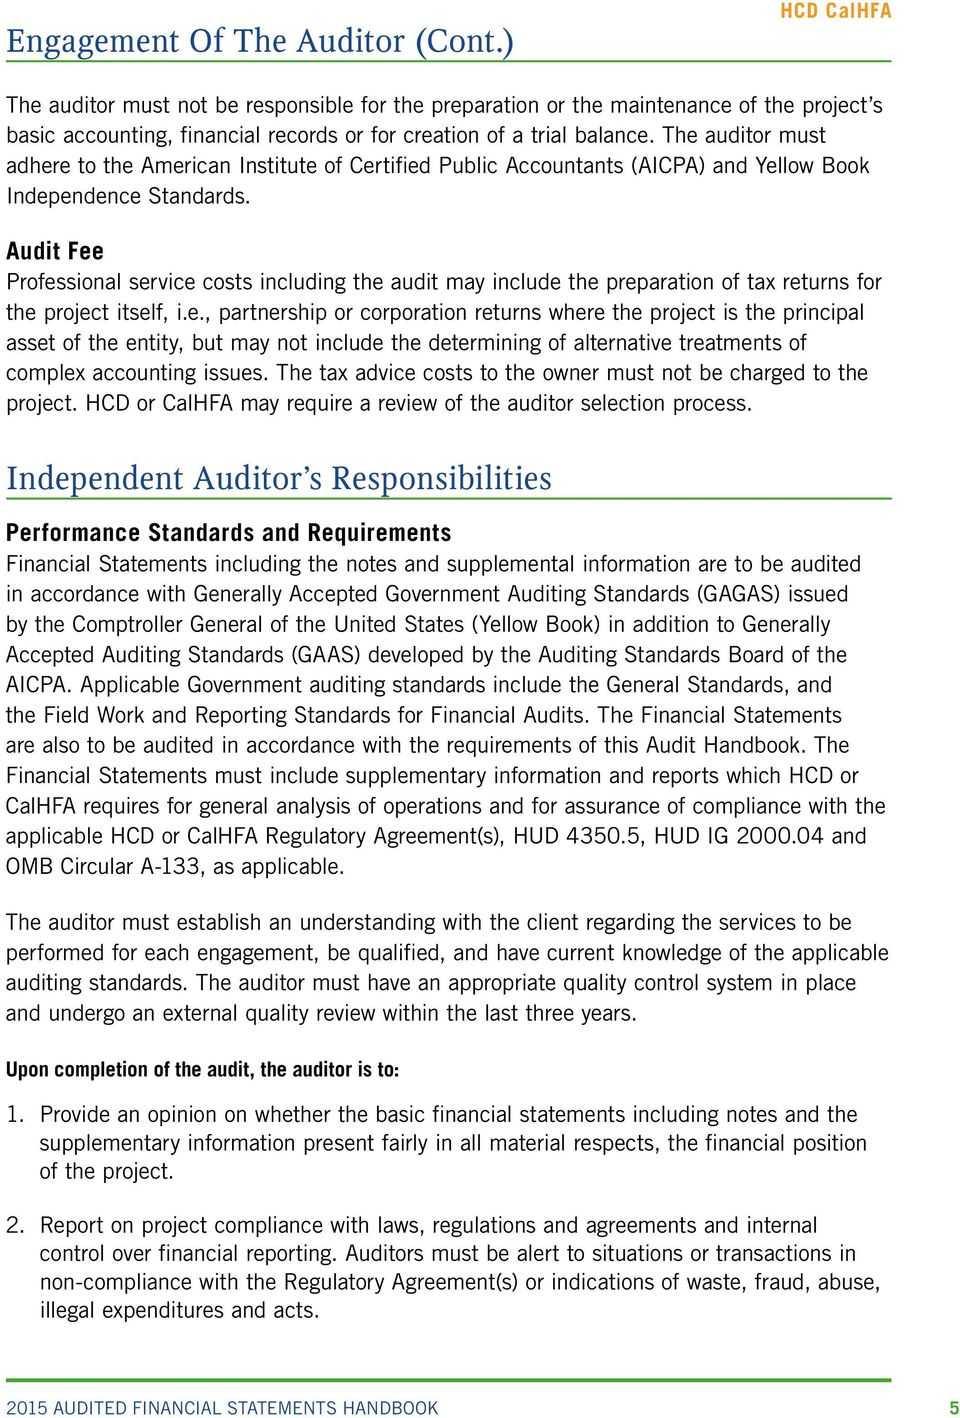 The auditor must adhere to the American Institute of Certified Public Accountants (AICPA) and Yellow Book Independence Standards.